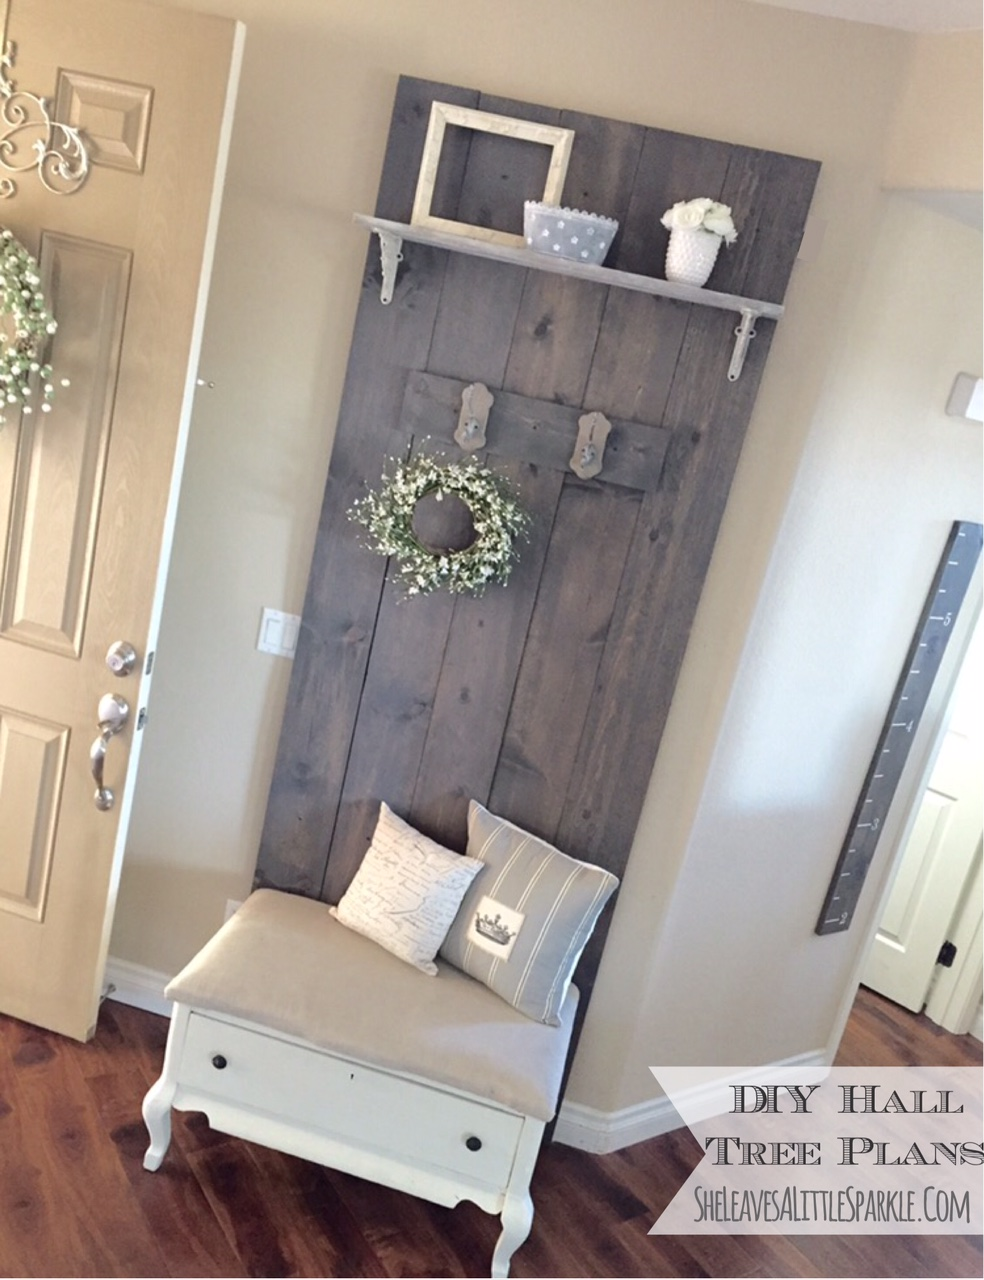 EASY DIY Hall Tree Plans